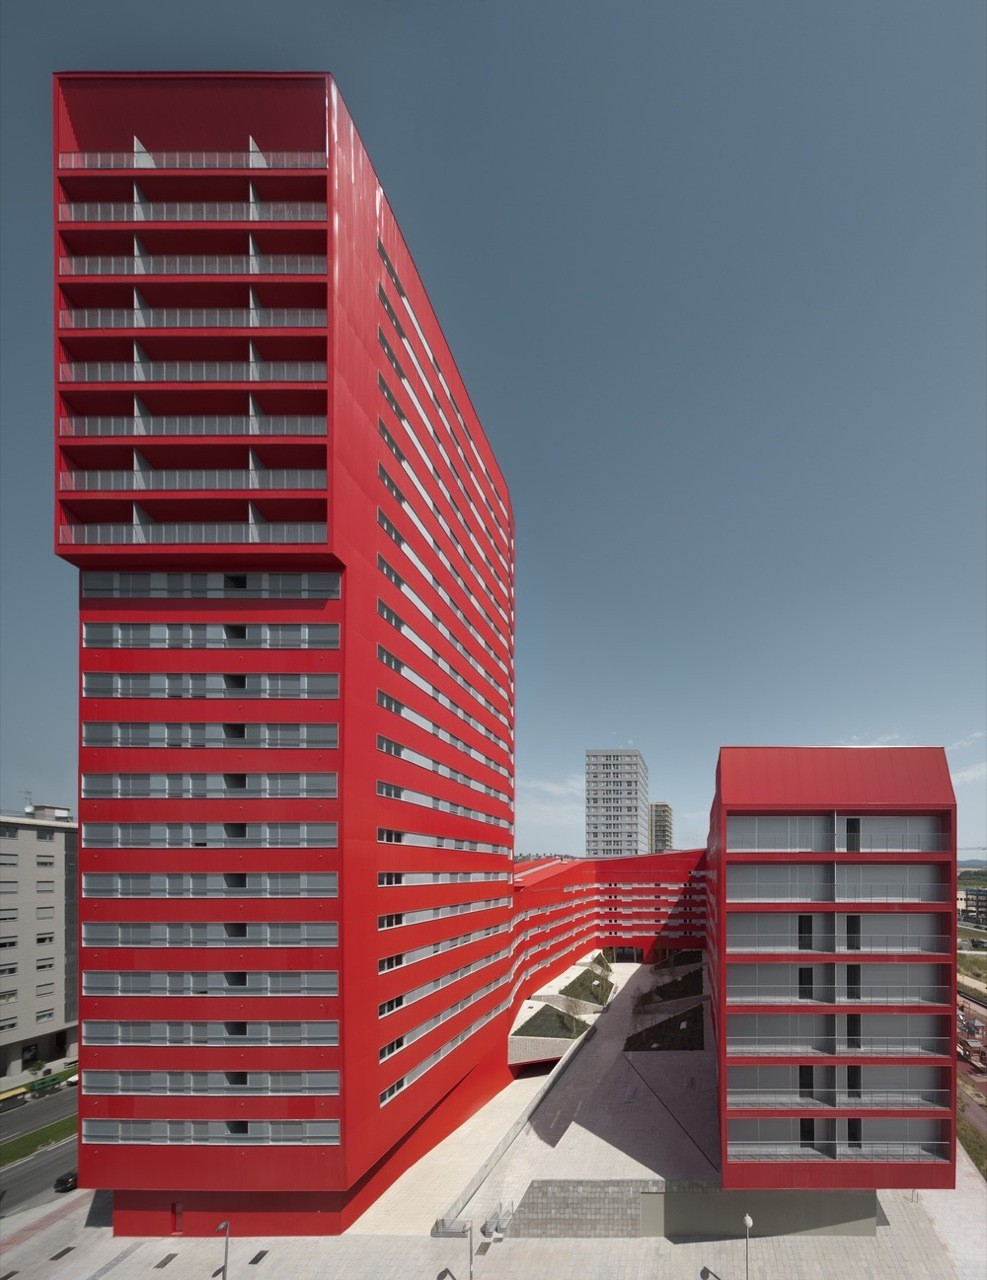 242 Social Housing Units in Salburúa / ACXT, © Aitor Ortiz